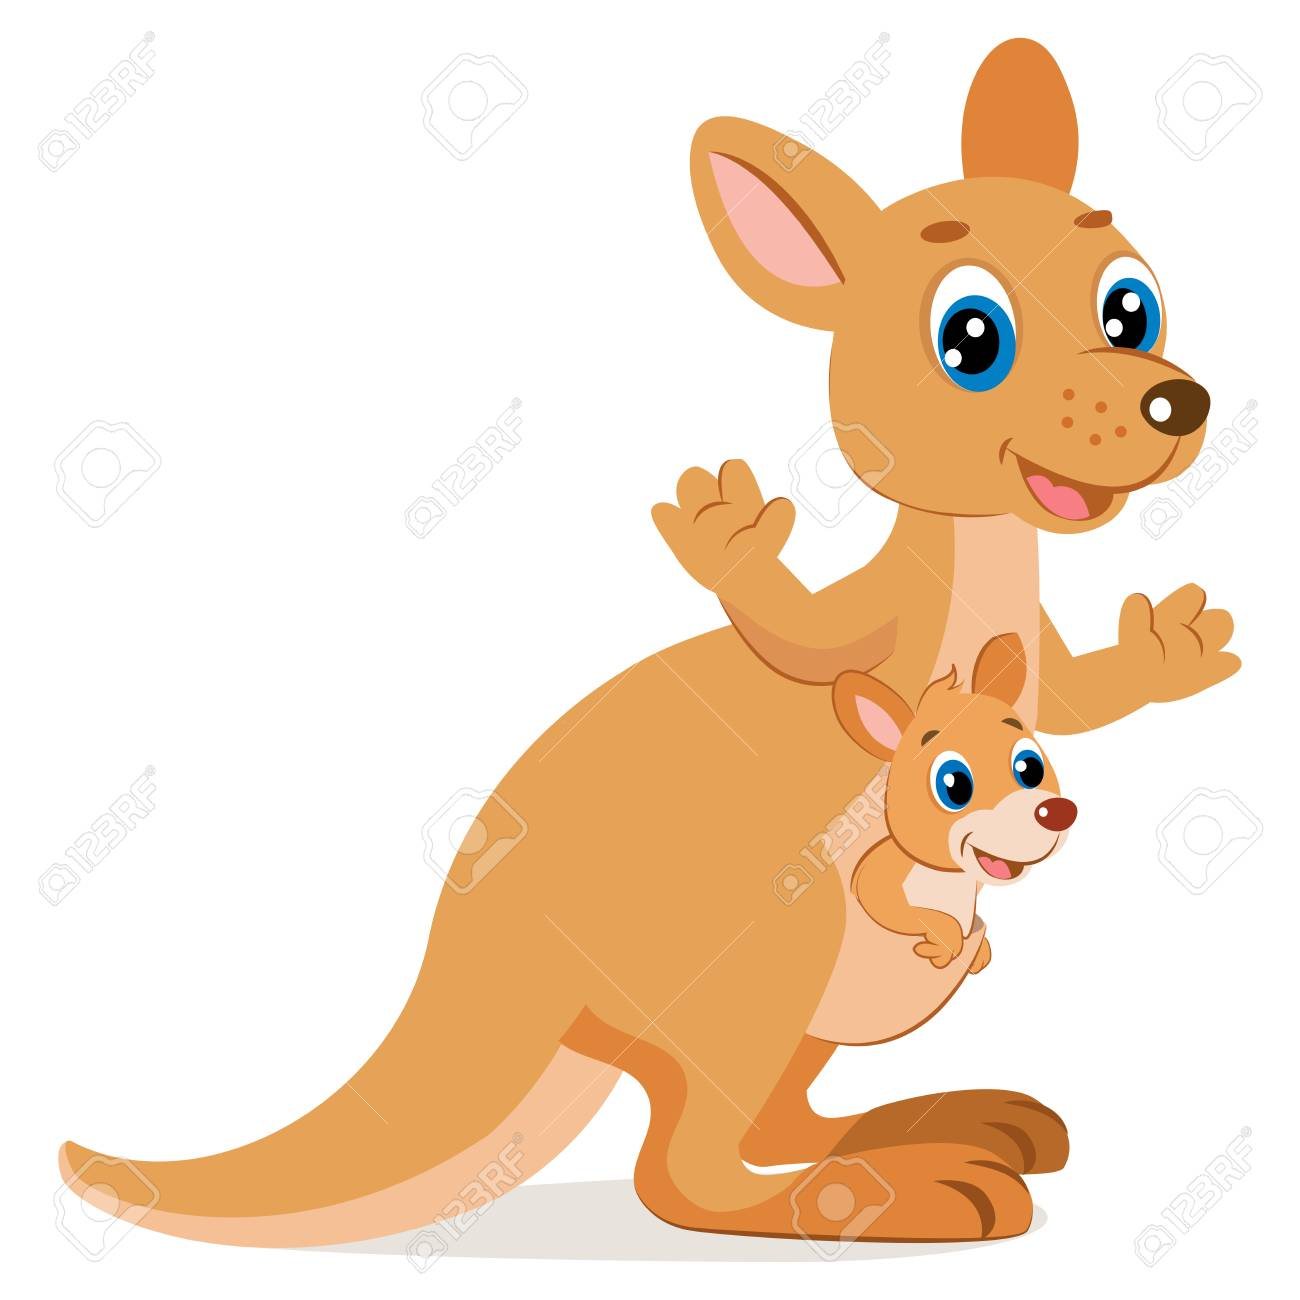 Mother Kangaroo With Her Little Cute Baby Kangaroo icon.